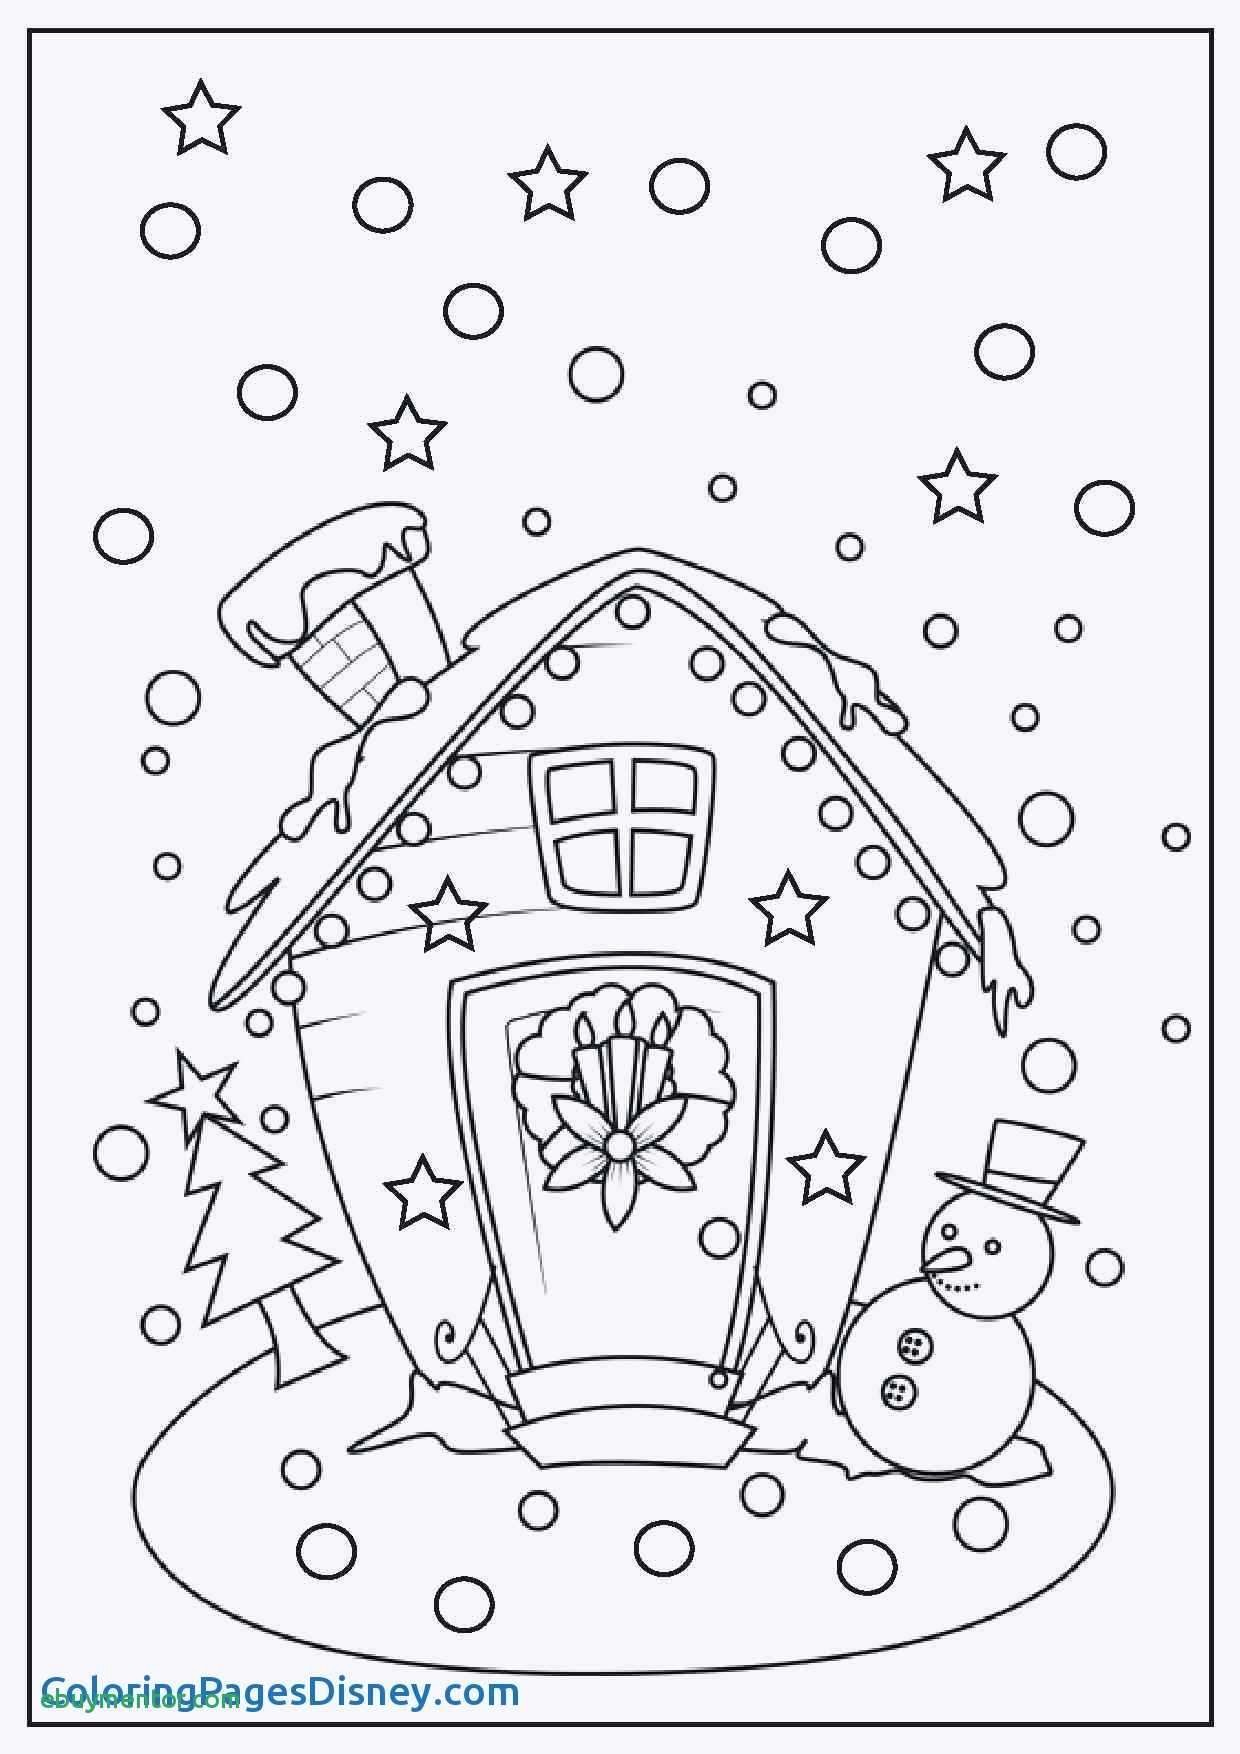 Christmas Coloring Pages Google Search With Booklet Printable Page For Kids